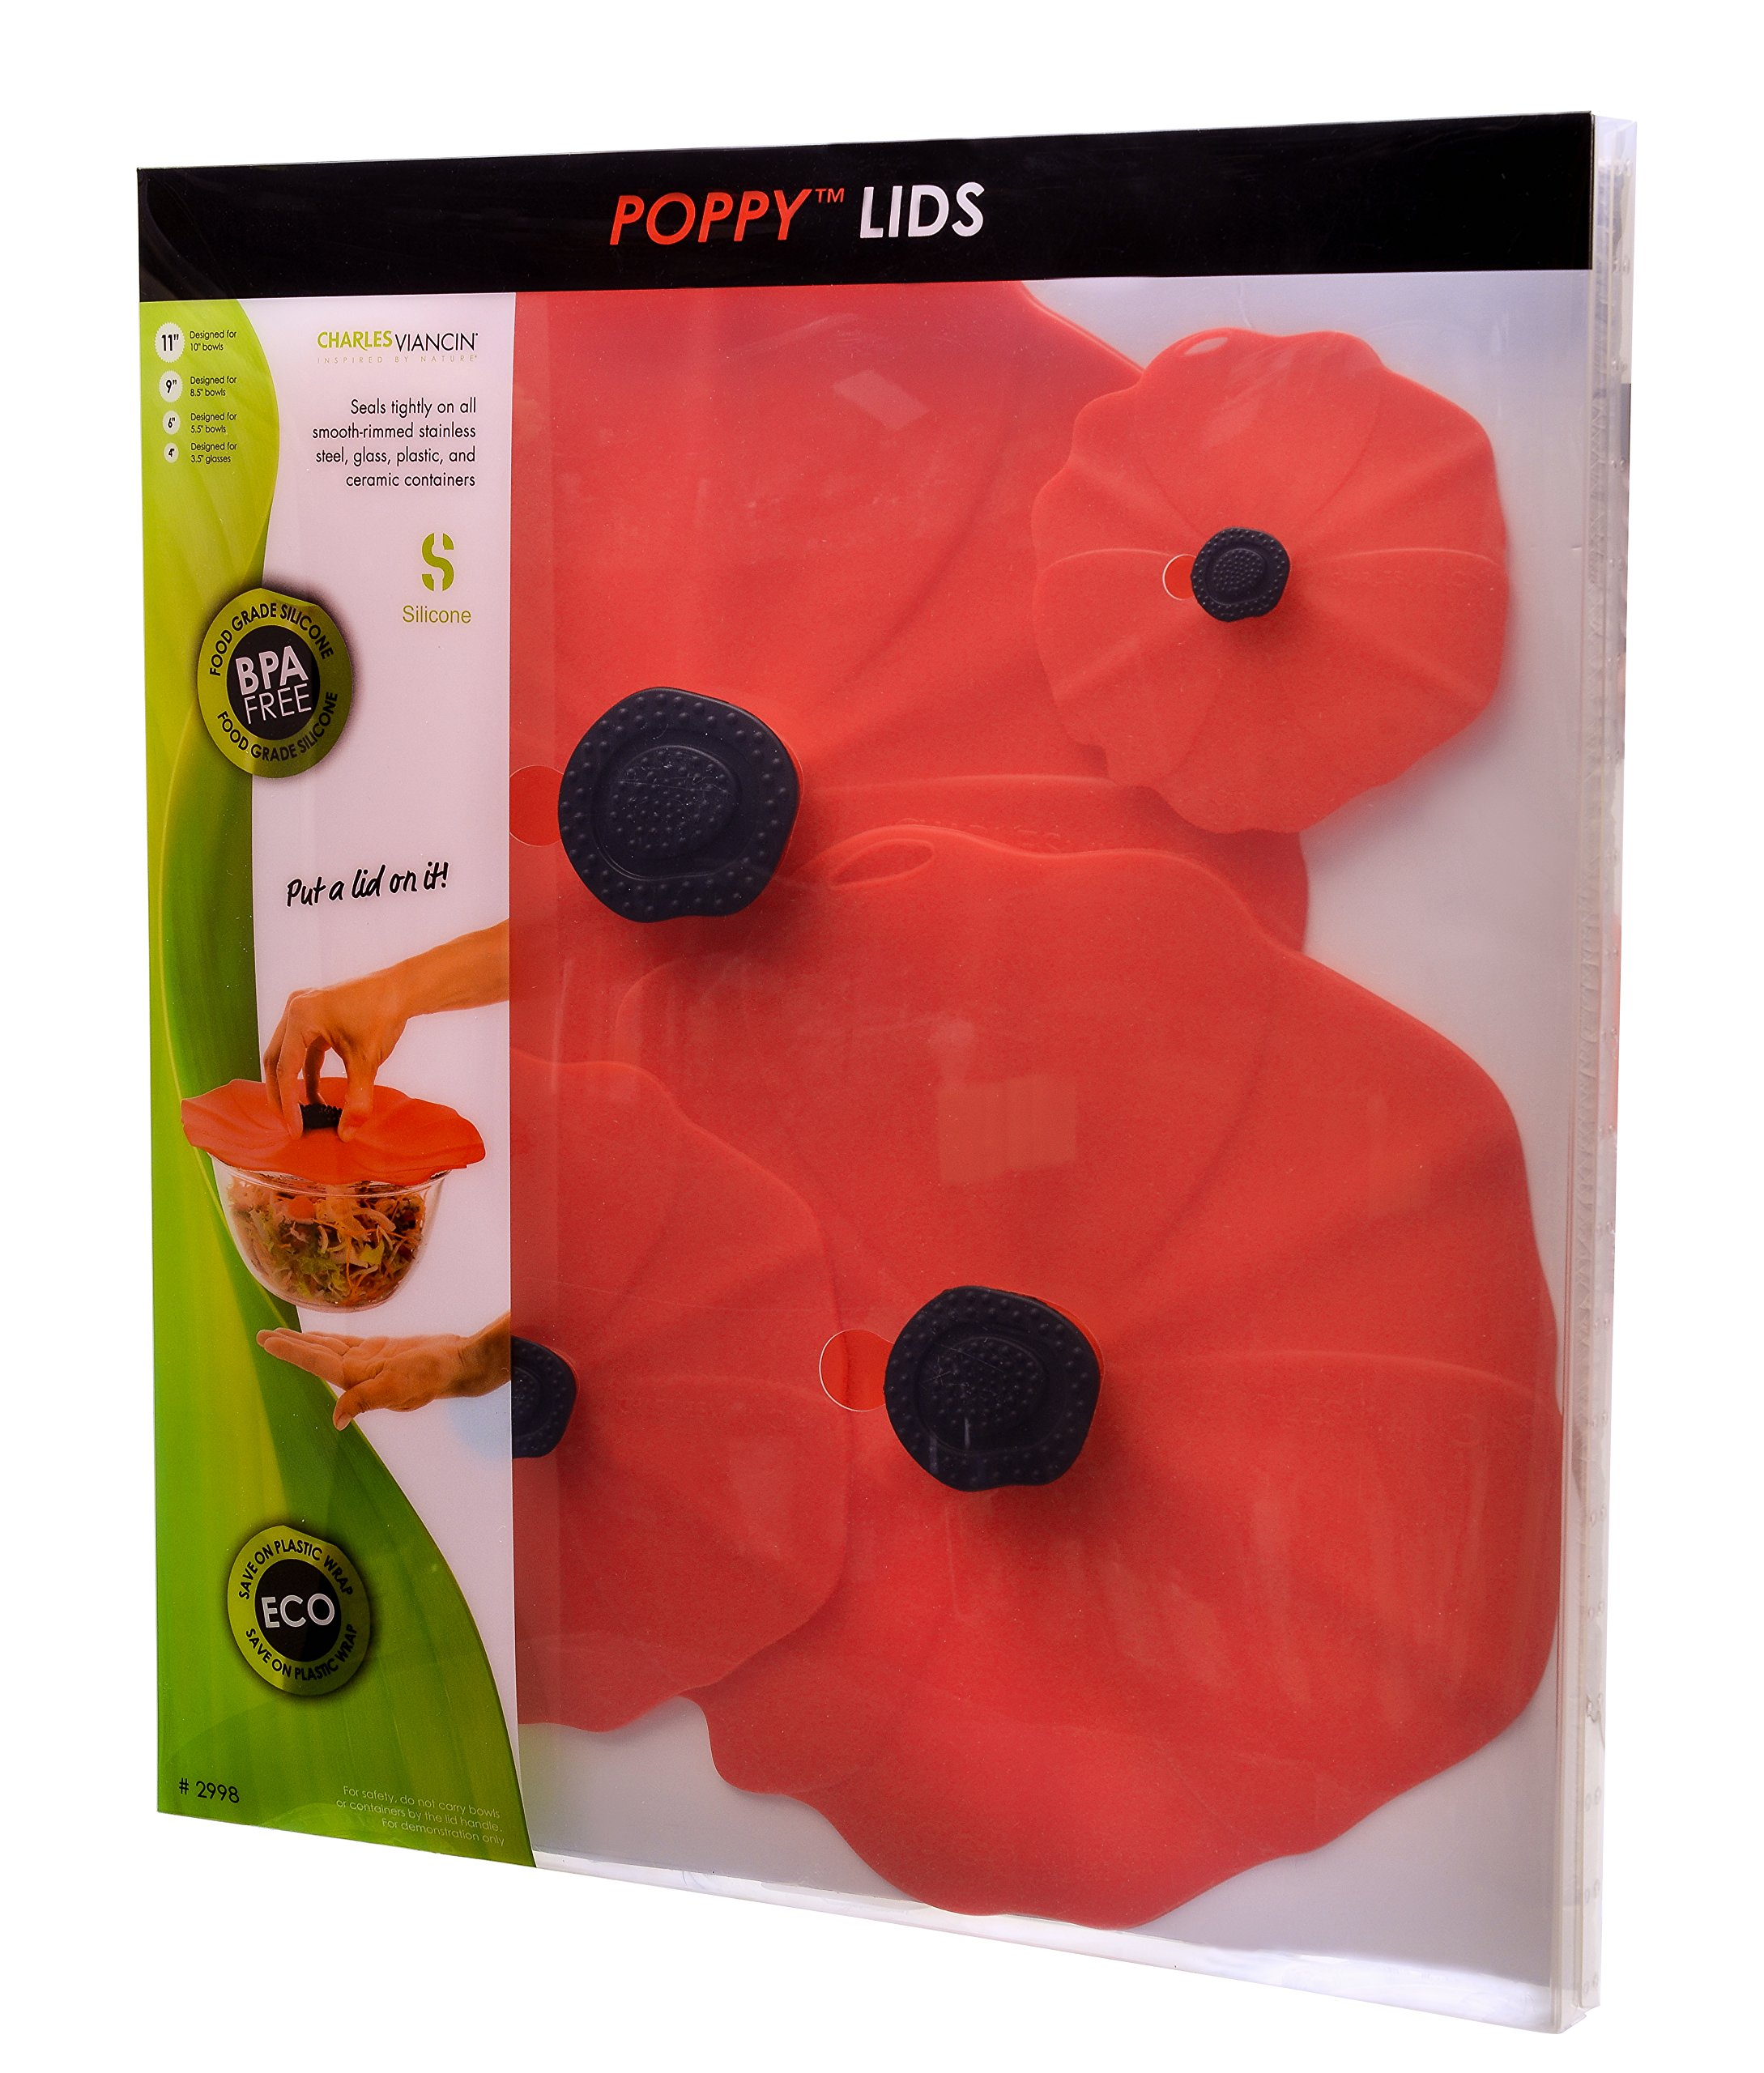 Poppy Gift Set by Charles Viancin